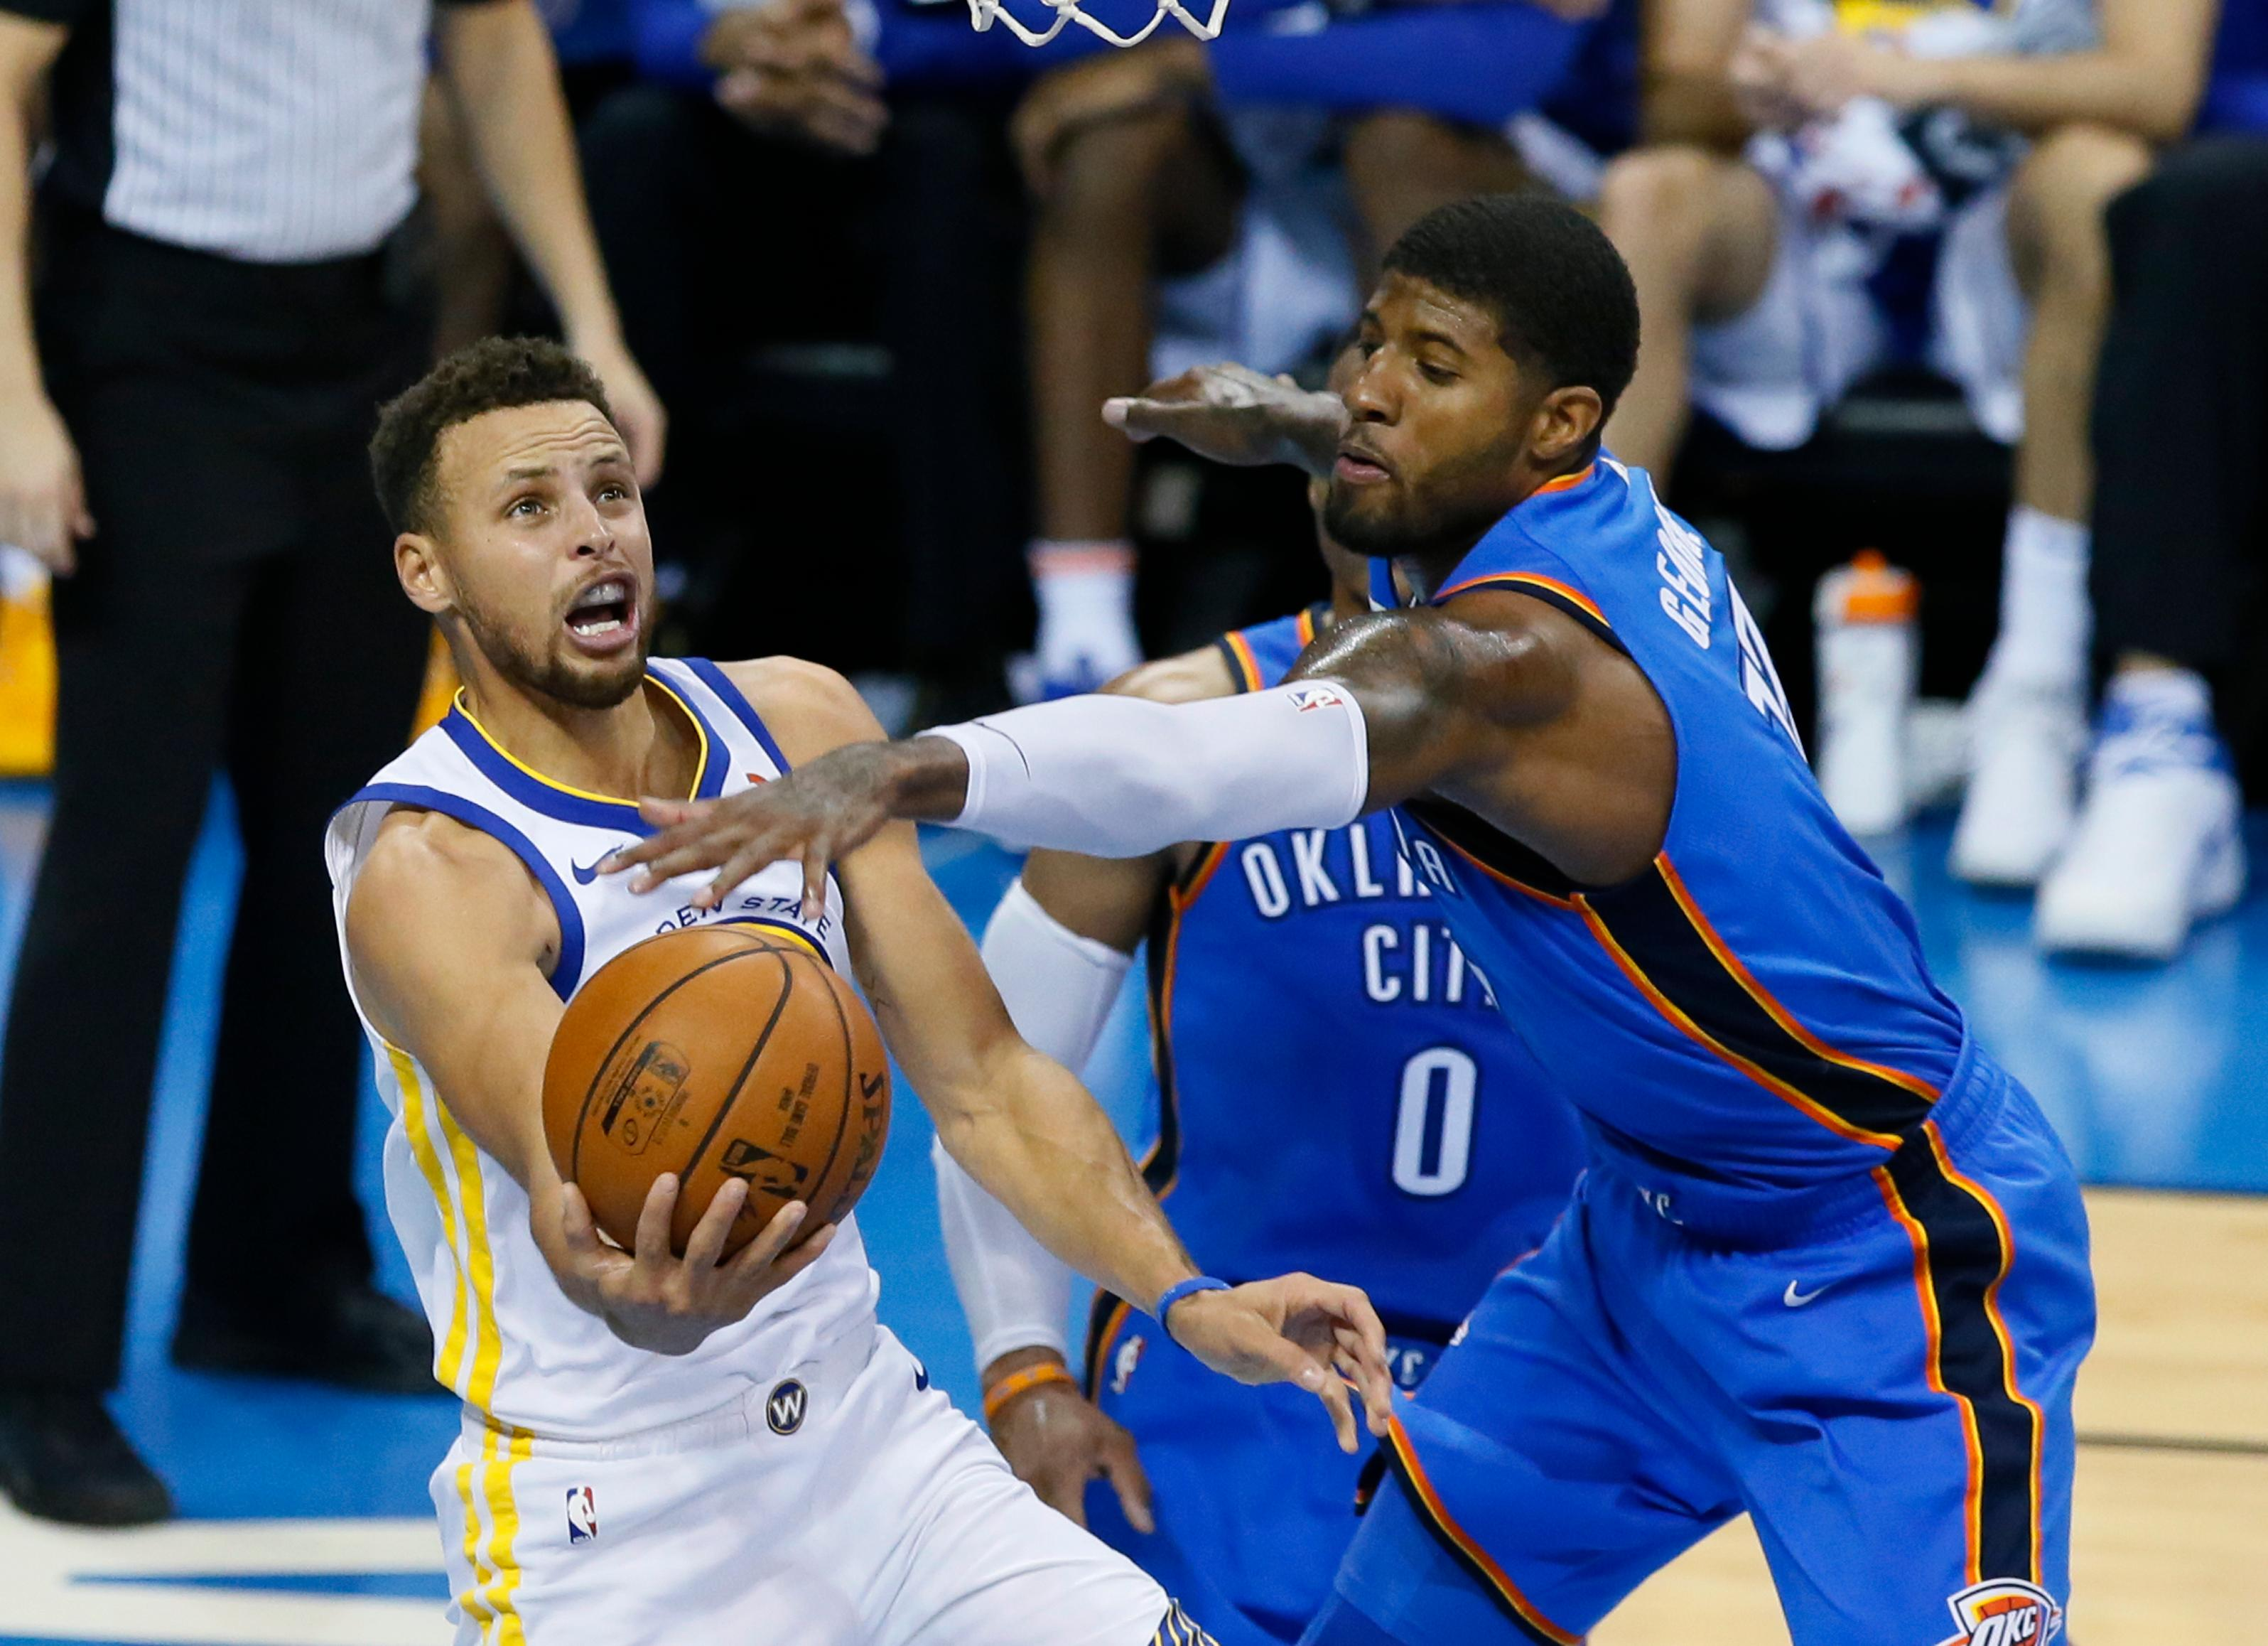 Golden State Warriors guard Stephen Curry, left, shoots as Oklahoma City Thunder forward Paul George, right, defends, during the second quarter of an NBA basketball game in Oklahoma City, Wednesday, Nov. 22, 2017. (AP Photo/Sue Ogrocki)